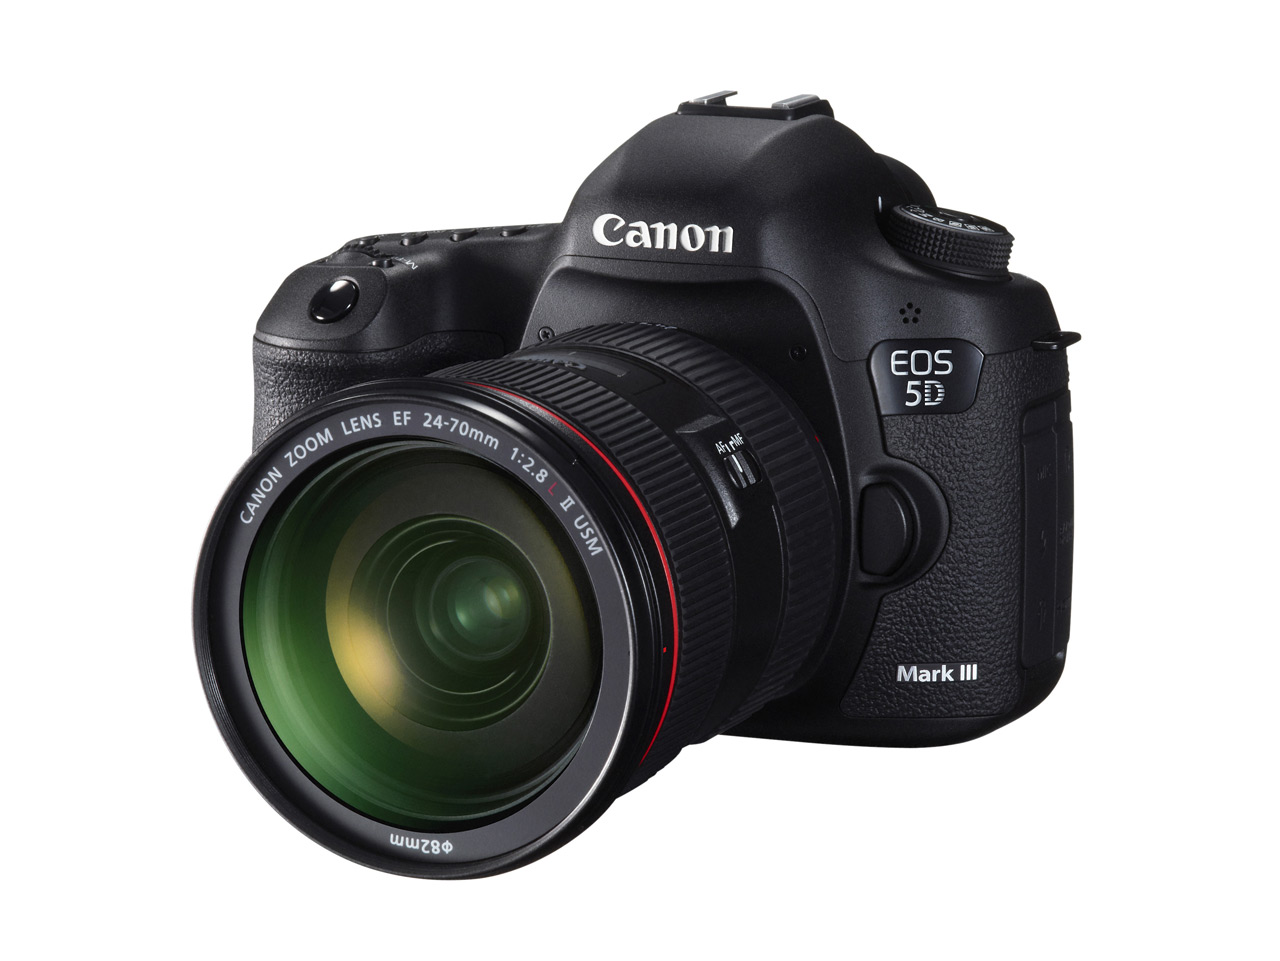 canon announces eos 5d mark iii 22mp full frame dslr. Black Bedroom Furniture Sets. Home Design Ideas